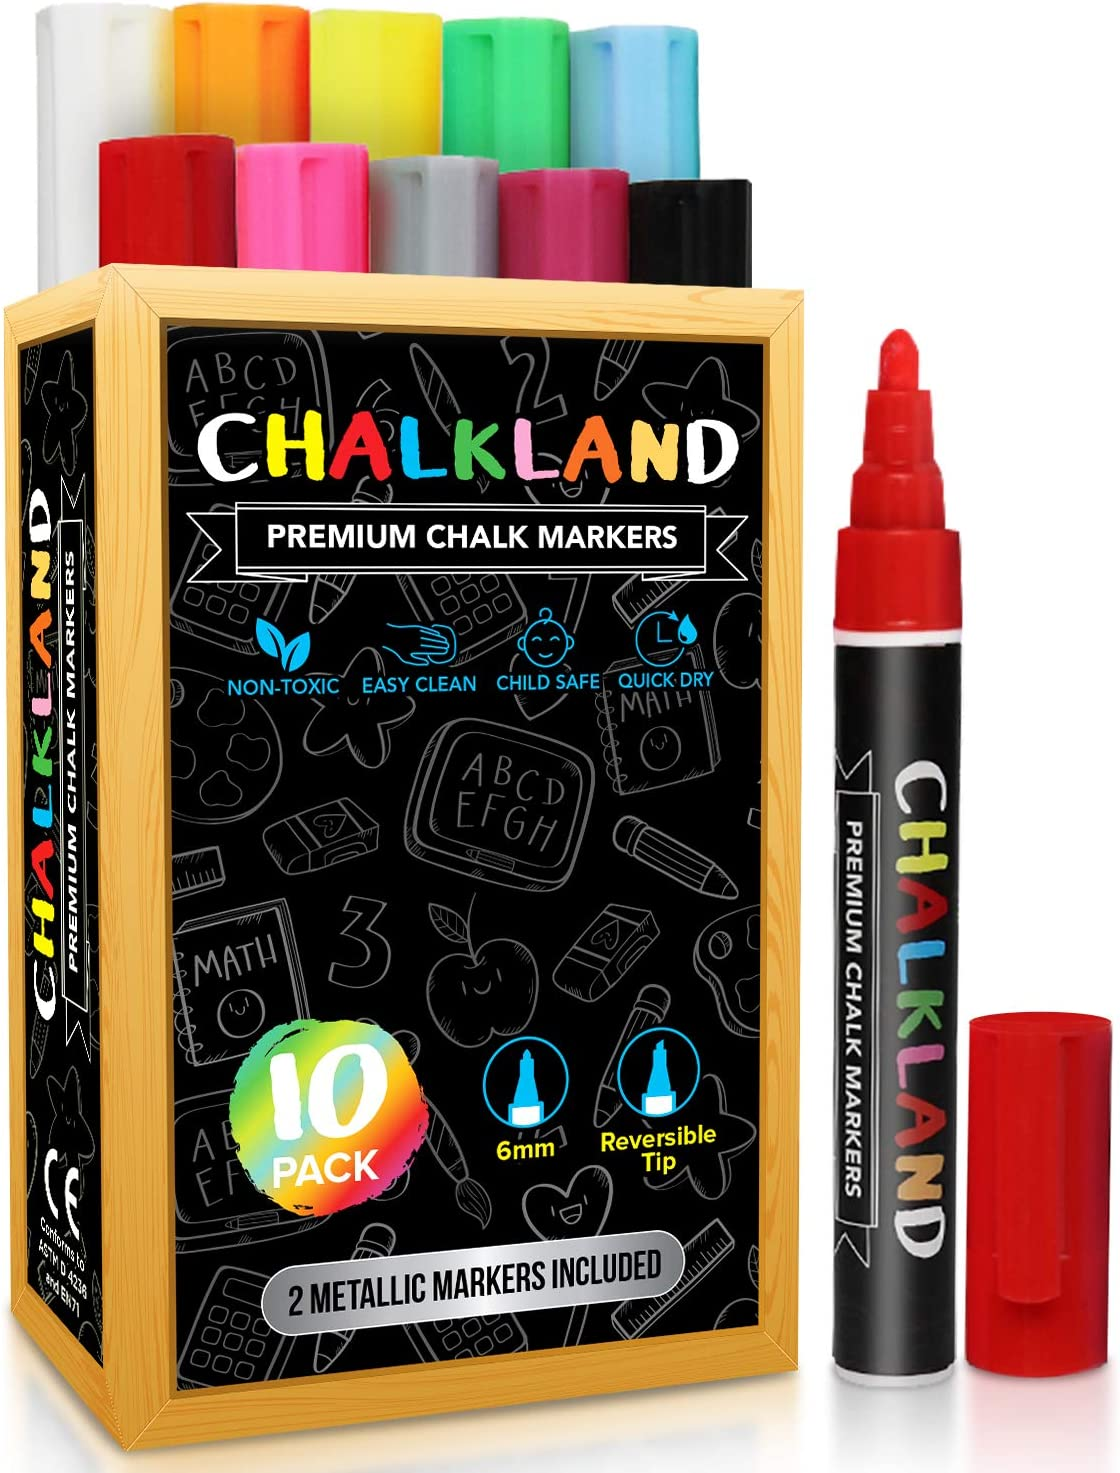 CHALKLAND Set of 10 Vibrant + Metallic Blackboard Markers - Liquid Chalk Markers for Chalkboard Signs - Non-Toxic Easy to Clean Chalkboard Pens - Car Window Markers - Chalk Marker - Chalk Pen : Office Products